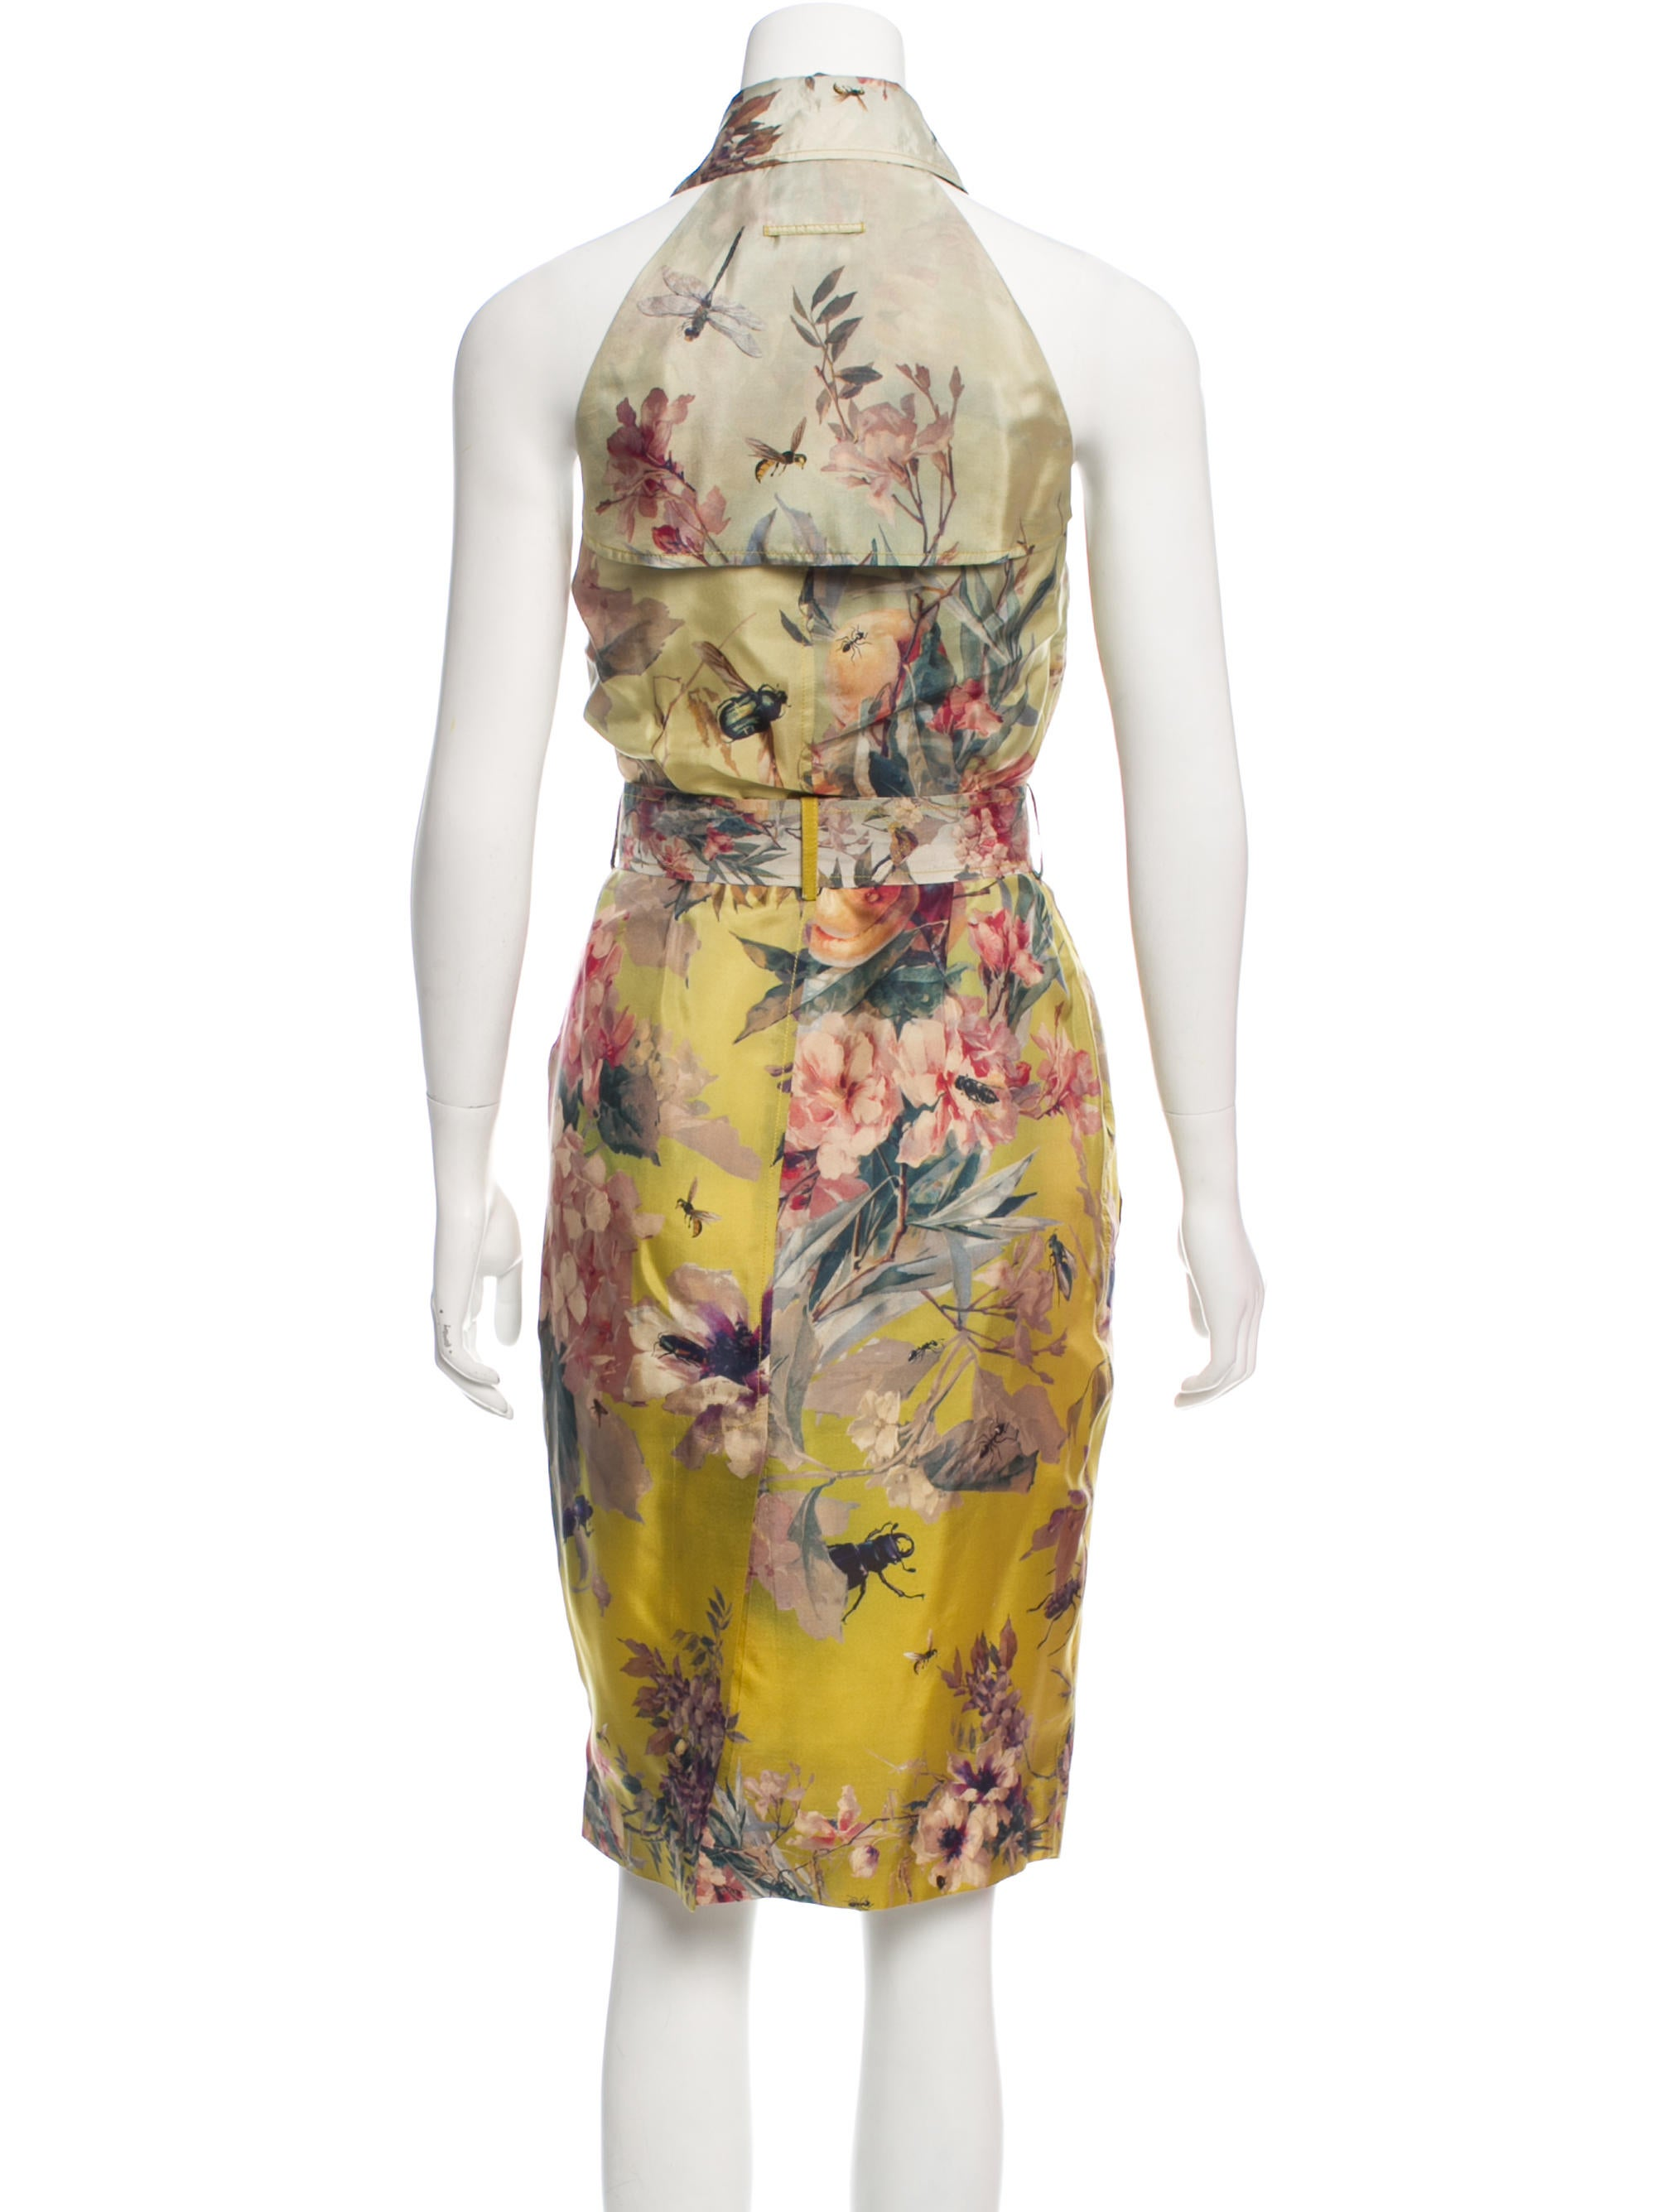 Jean paul gaultier silk wrap dress clothing jea26158 for Jean paul gaultier clothing